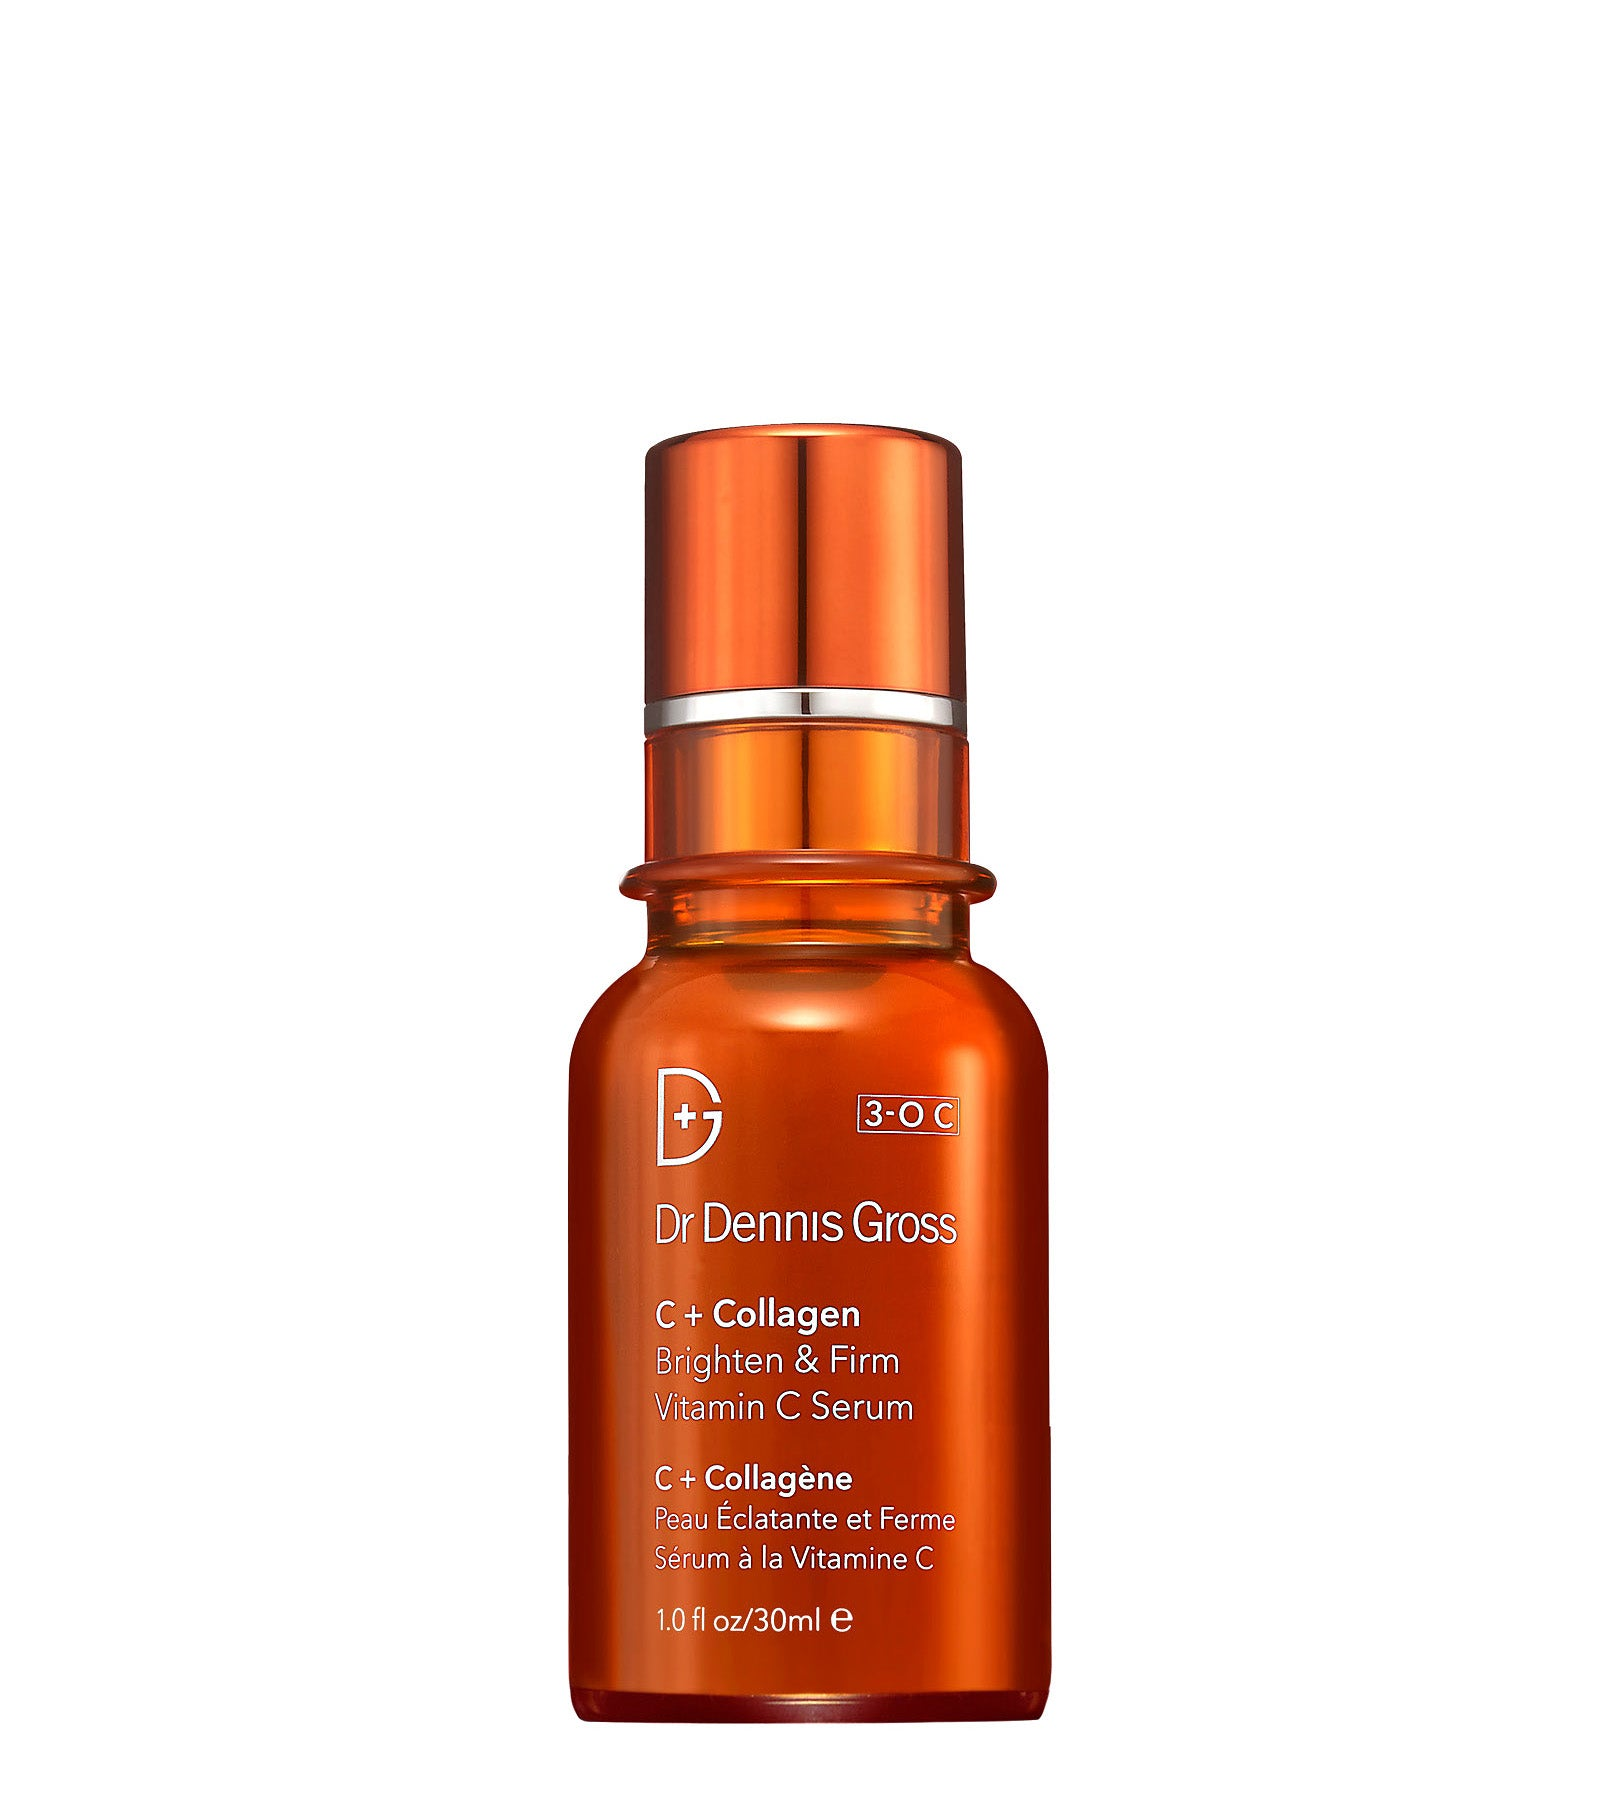 C + Collagen Brighten & Firm Vitamin C Serum - 30ML